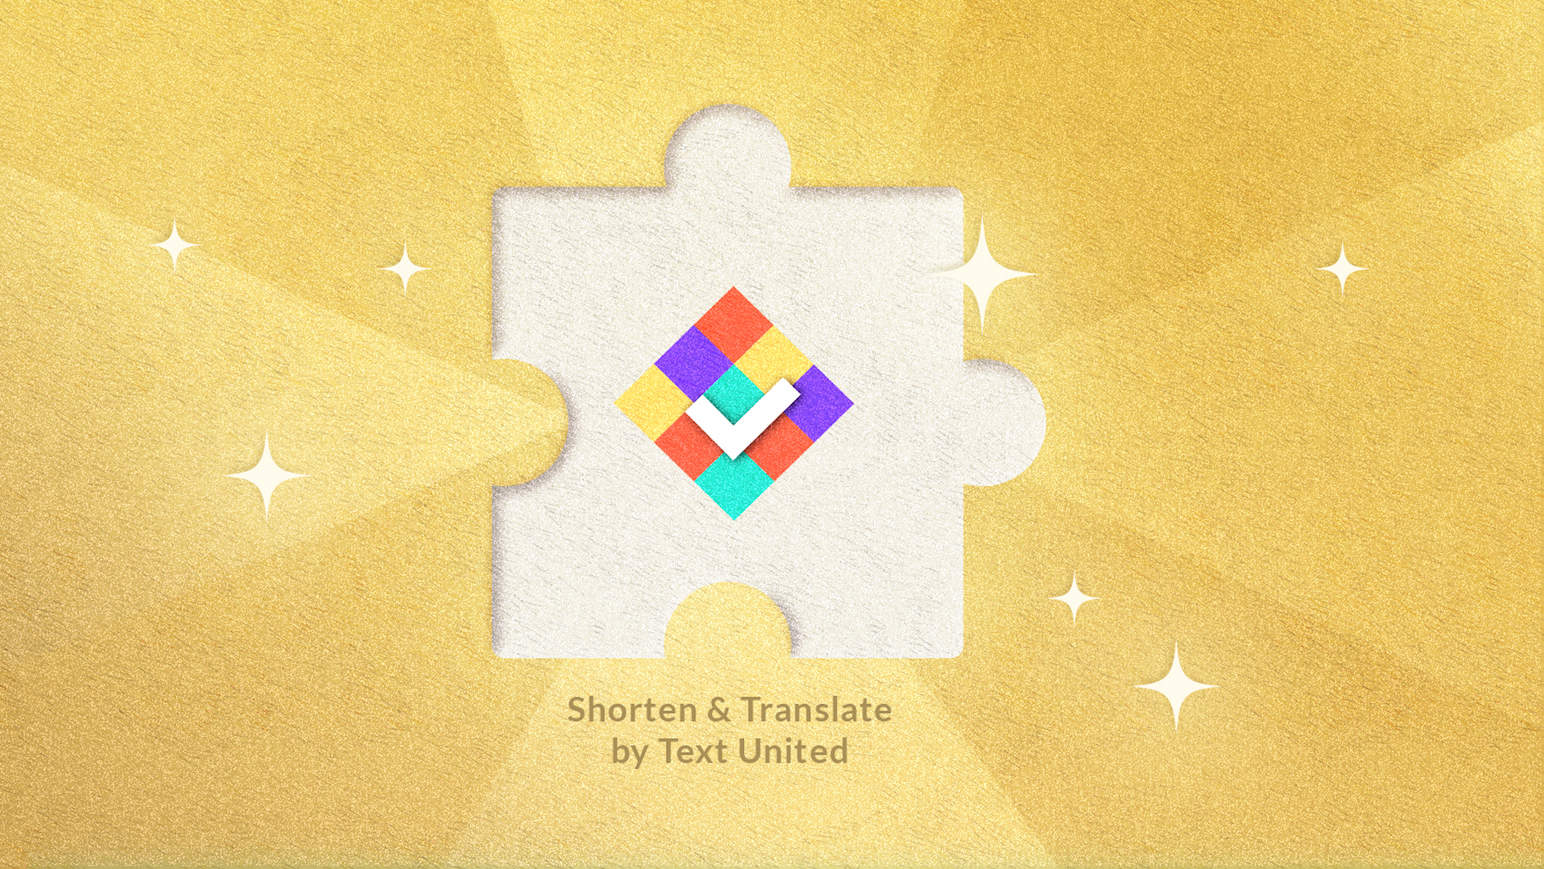 Text United Launches Shorten & Translate Chrome Extension